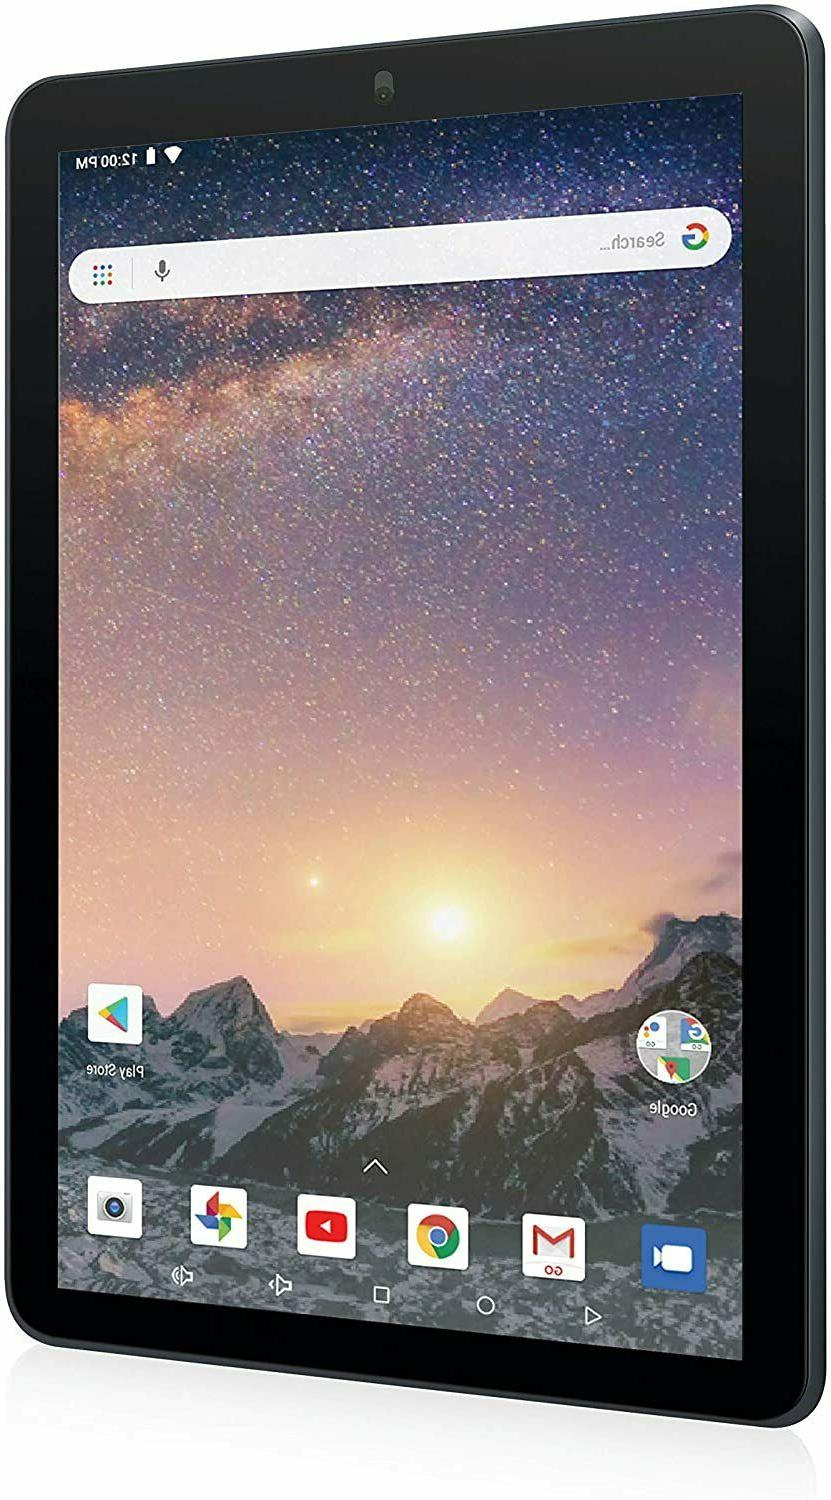 2-1 Computer 2-n-1 Touchscreen Computer/Tablet On Sale HD